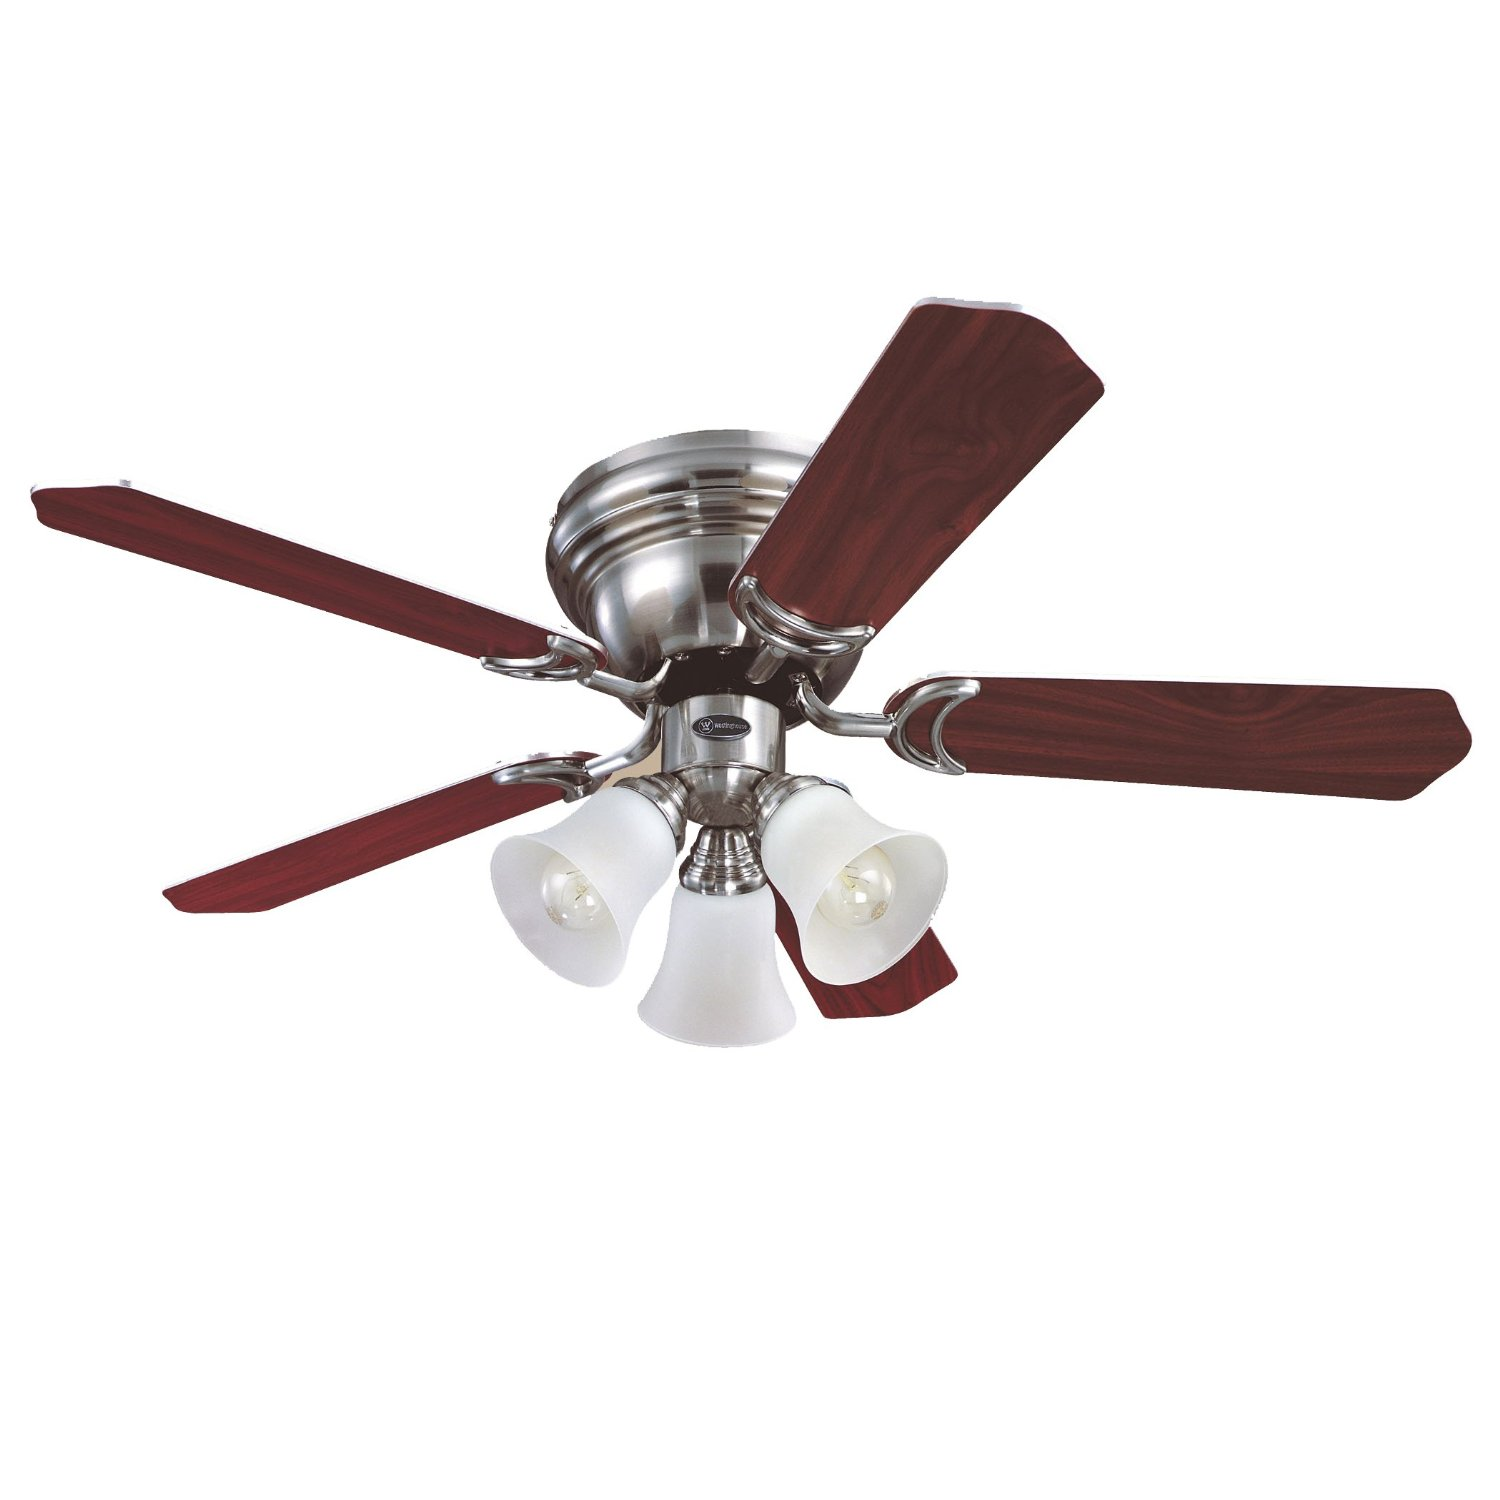 Best Large Ceiling Fan 5 Best Large Ceiling Fans Tool Box